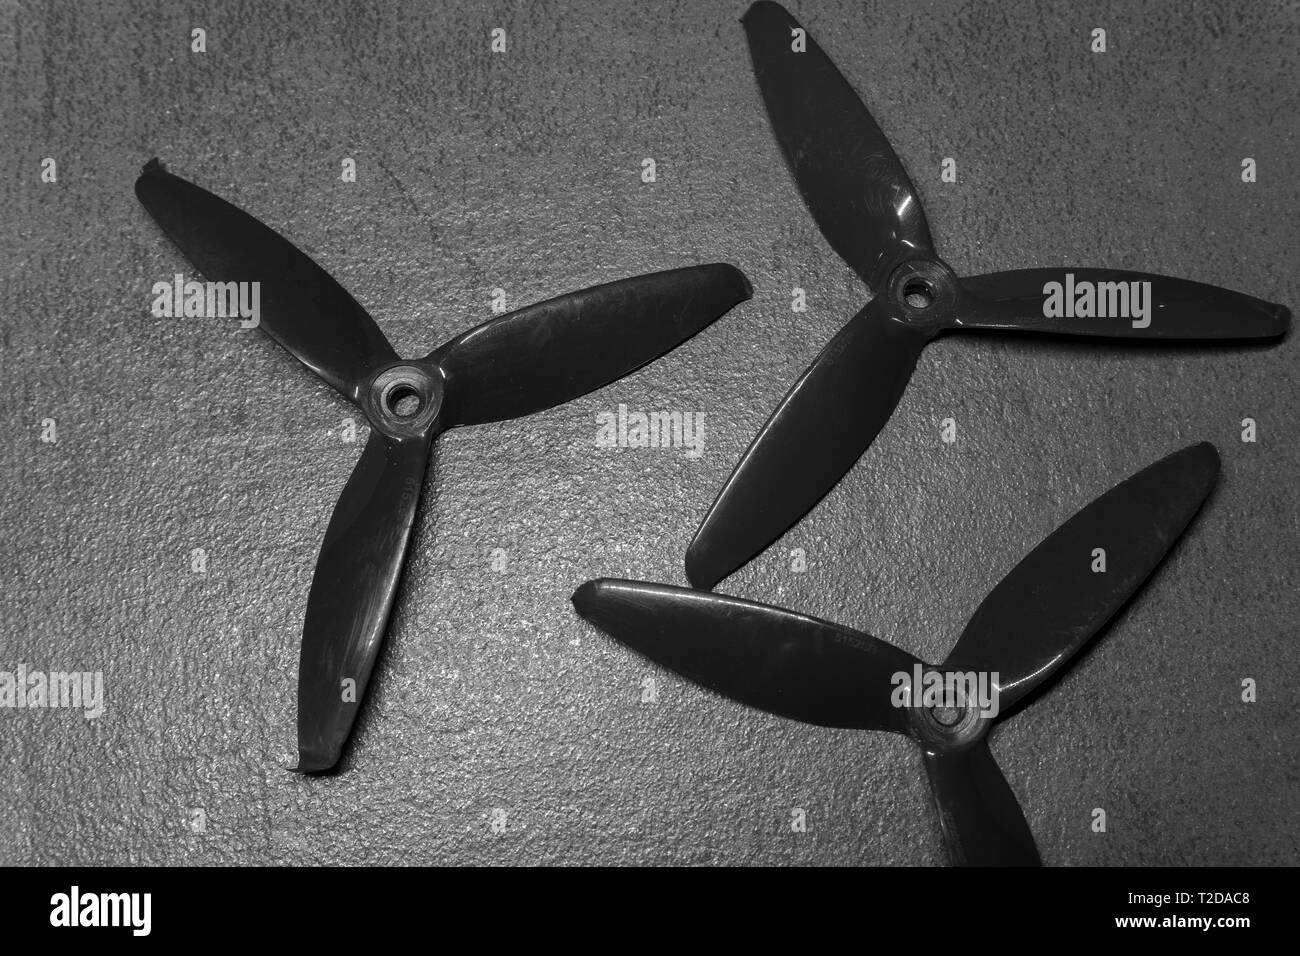 RC drone propeller - Stock Image